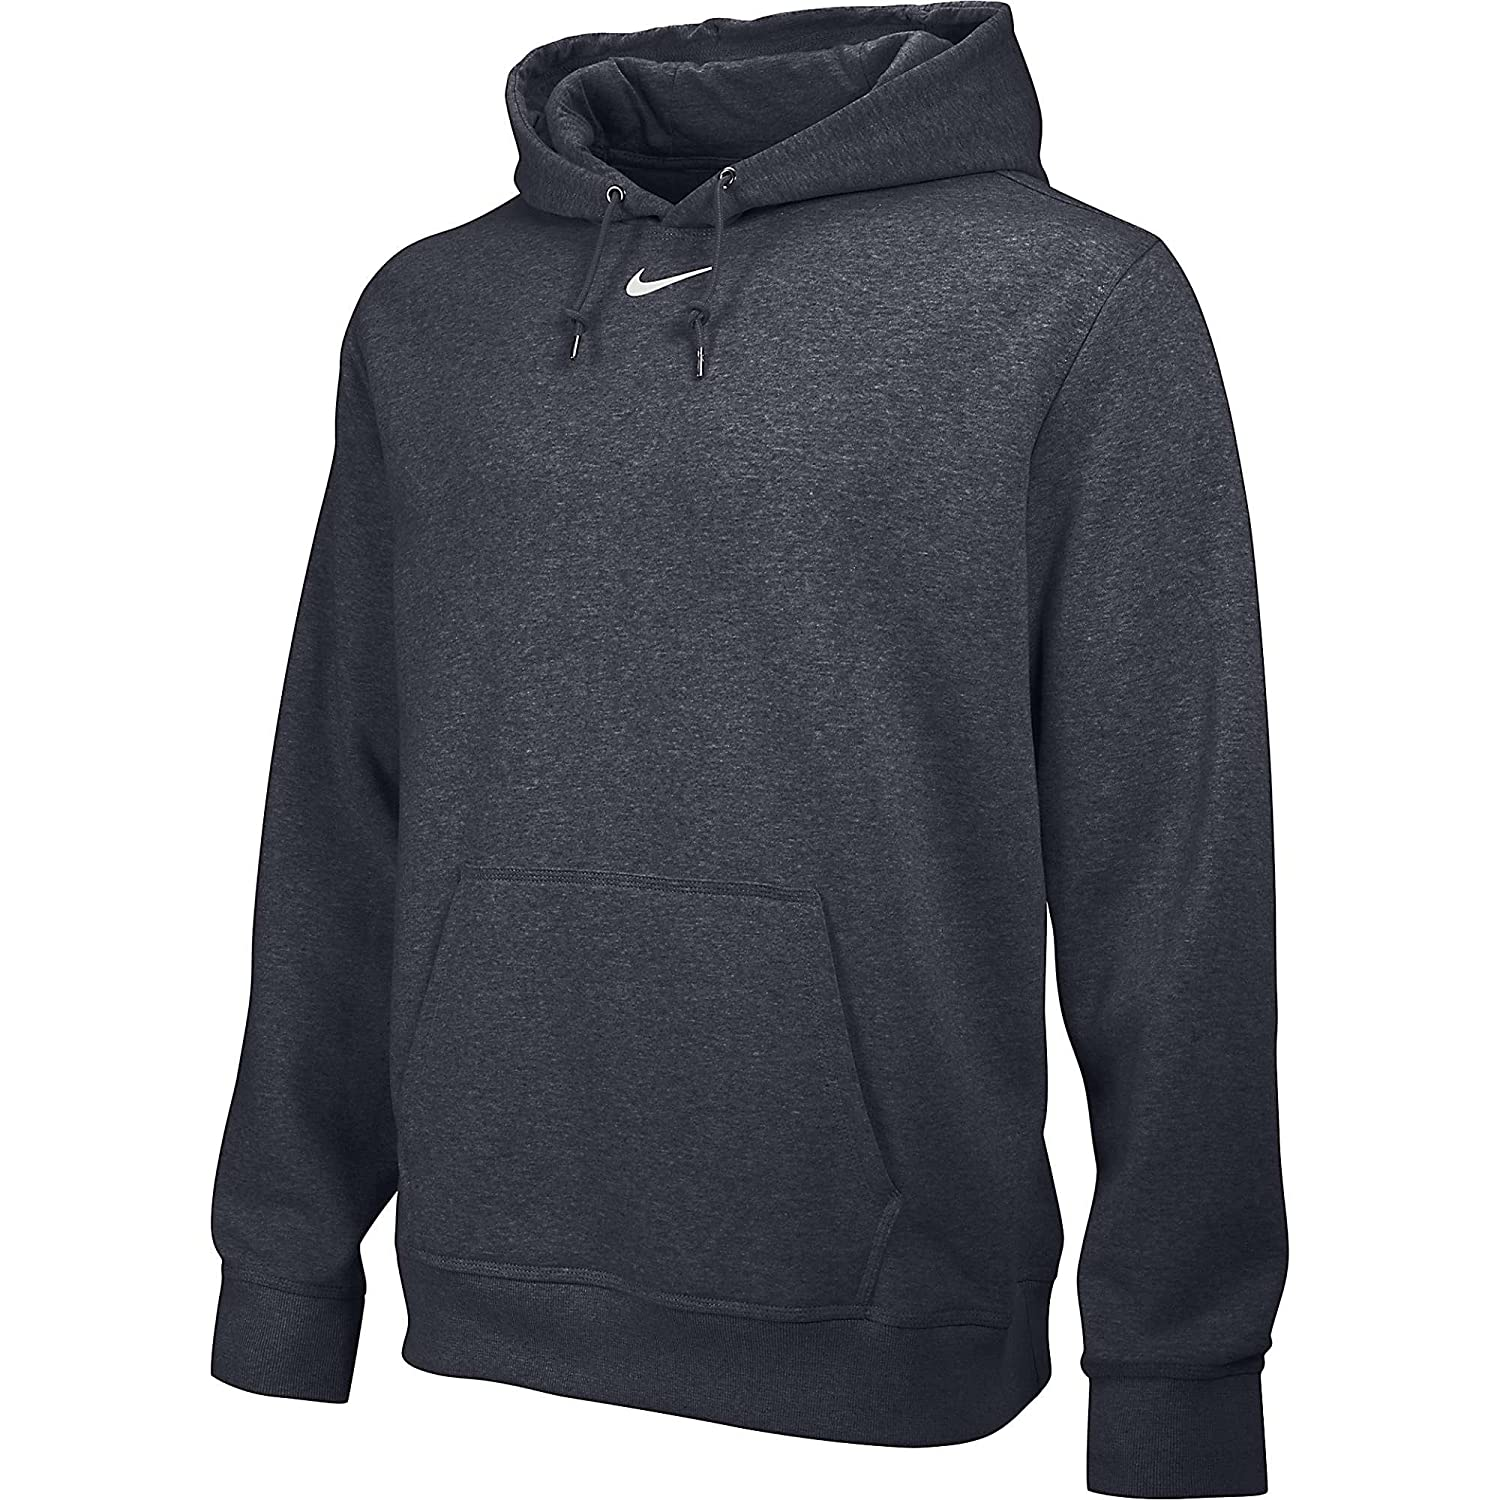 Nike Men's Team Club Fleece Hoody at Amazon Men's Clothing store: